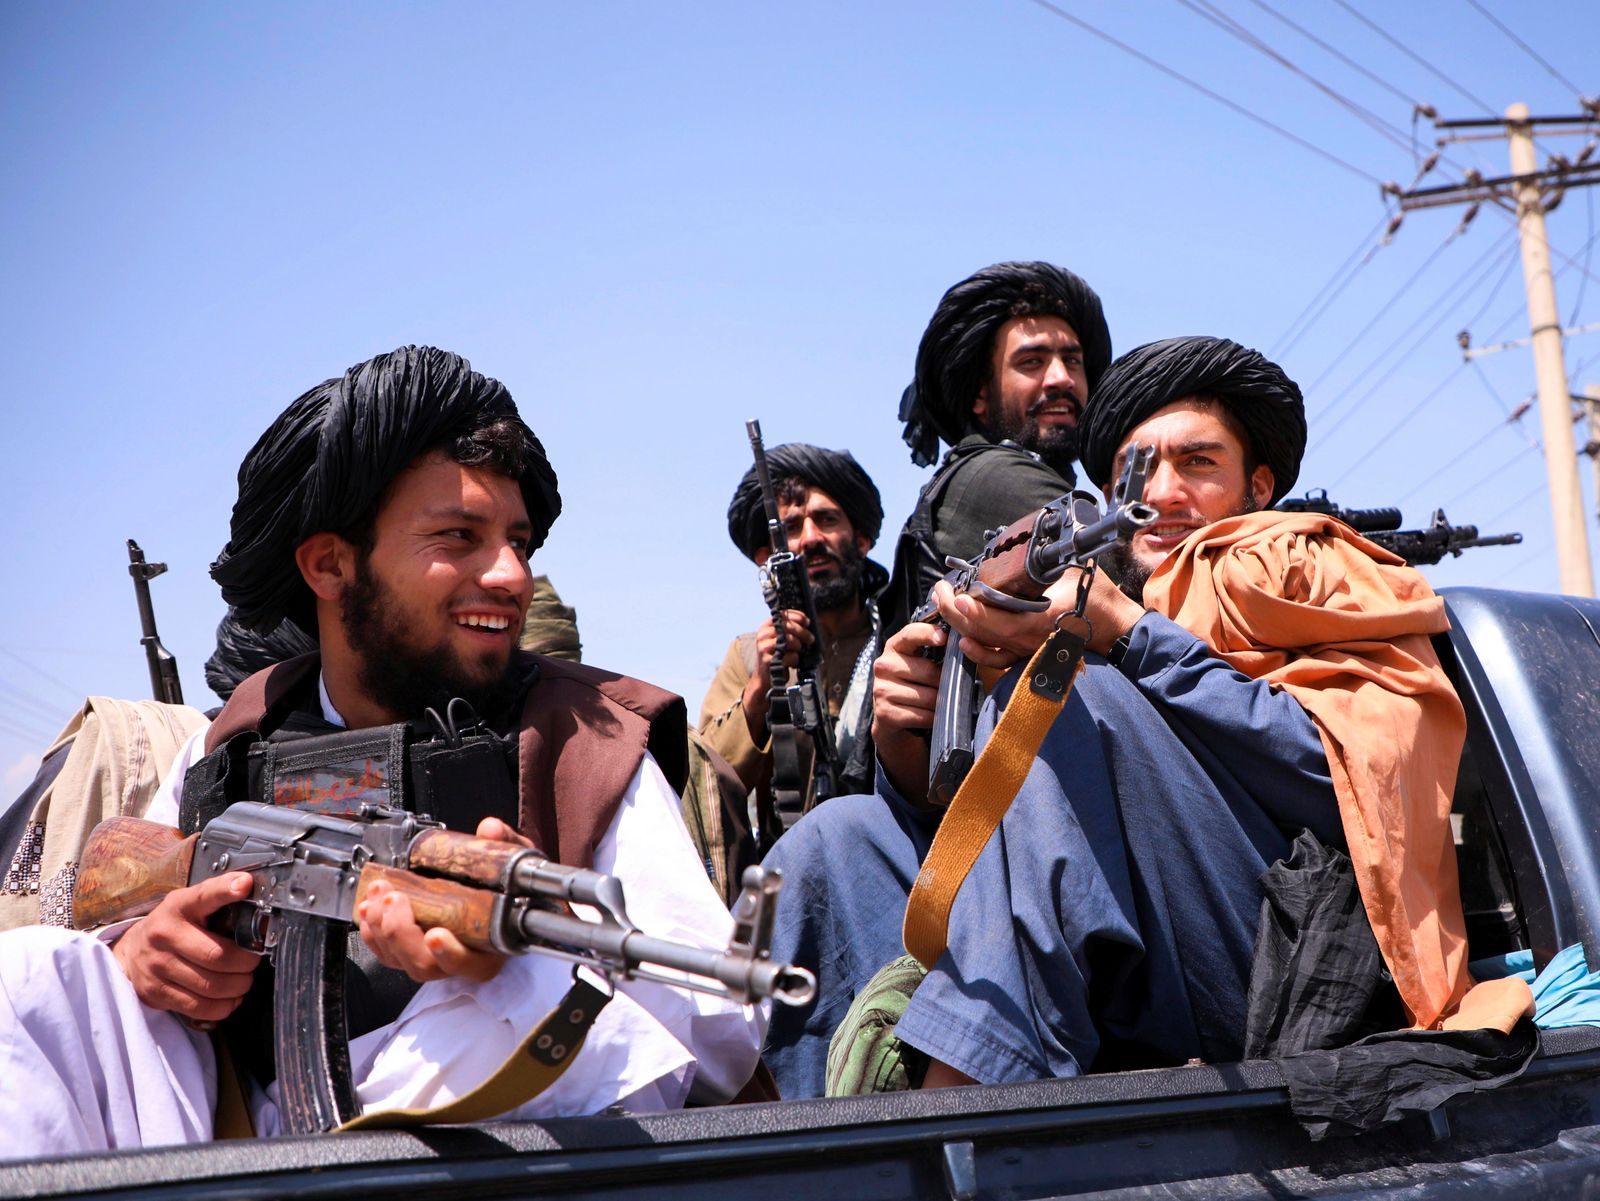 Taliban forces patrol in front of Hamid Karzai International Airport in Kabul